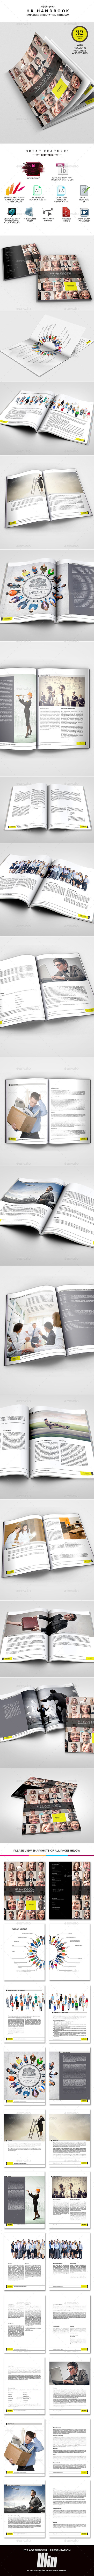 GraphicRiver HR Handbook and Employee Manual Template 9834494